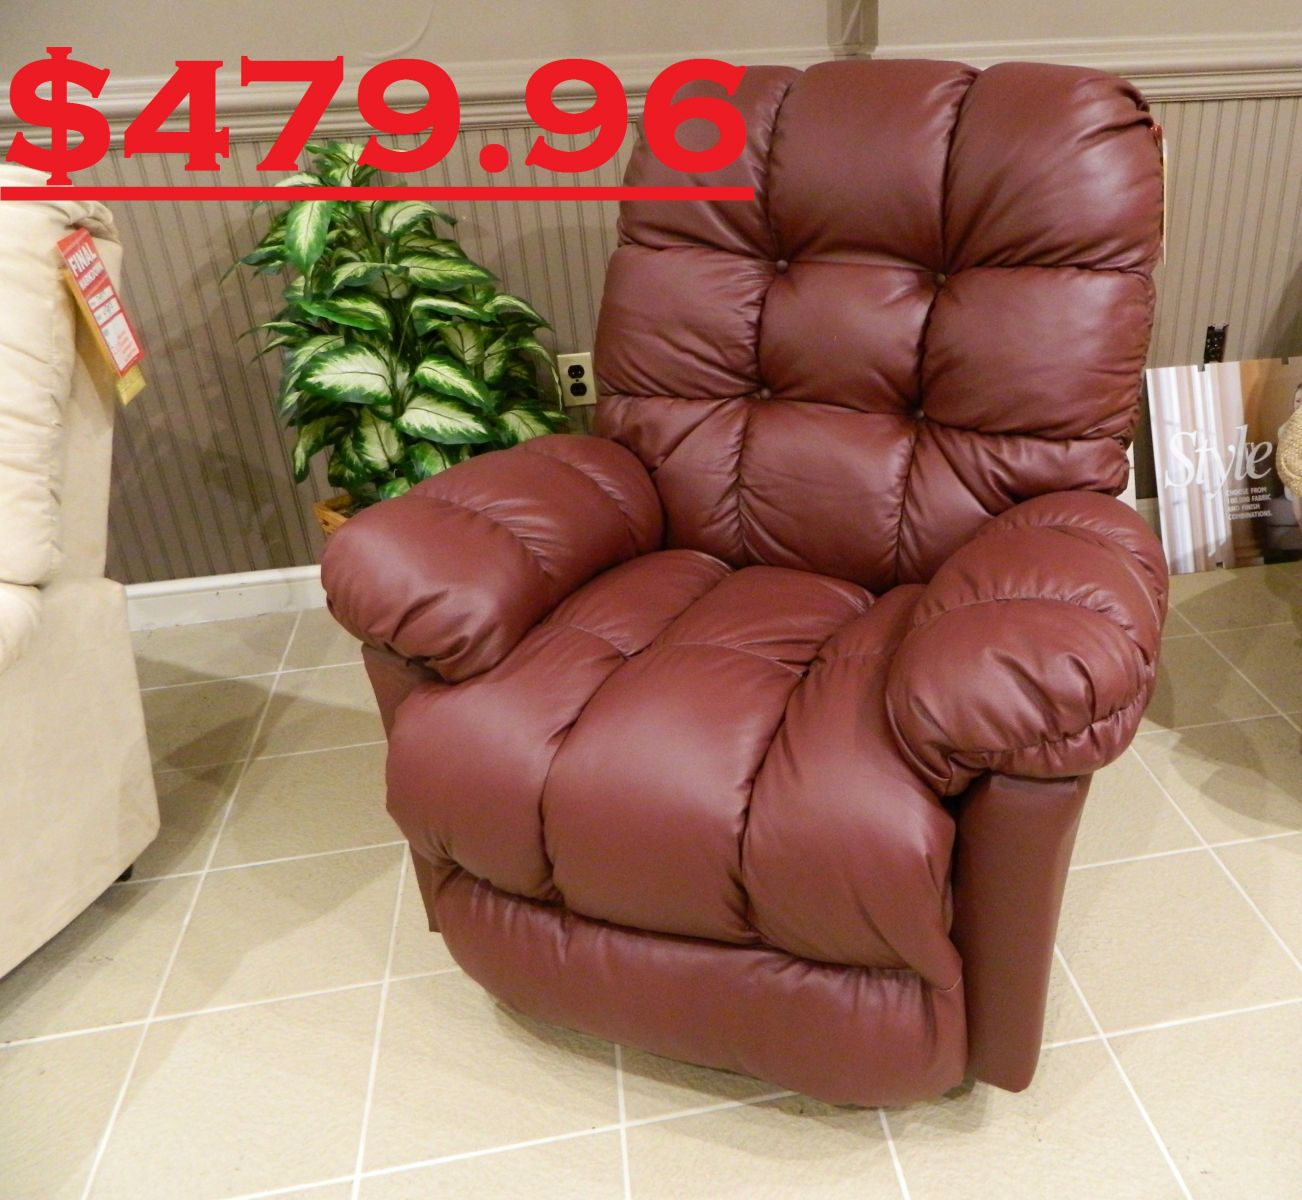 Best Brosmer Rocker Recliner was $915 clearance price $479.96 & Best Brosmer Recliner 479_96(1).JPG islam-shia.org